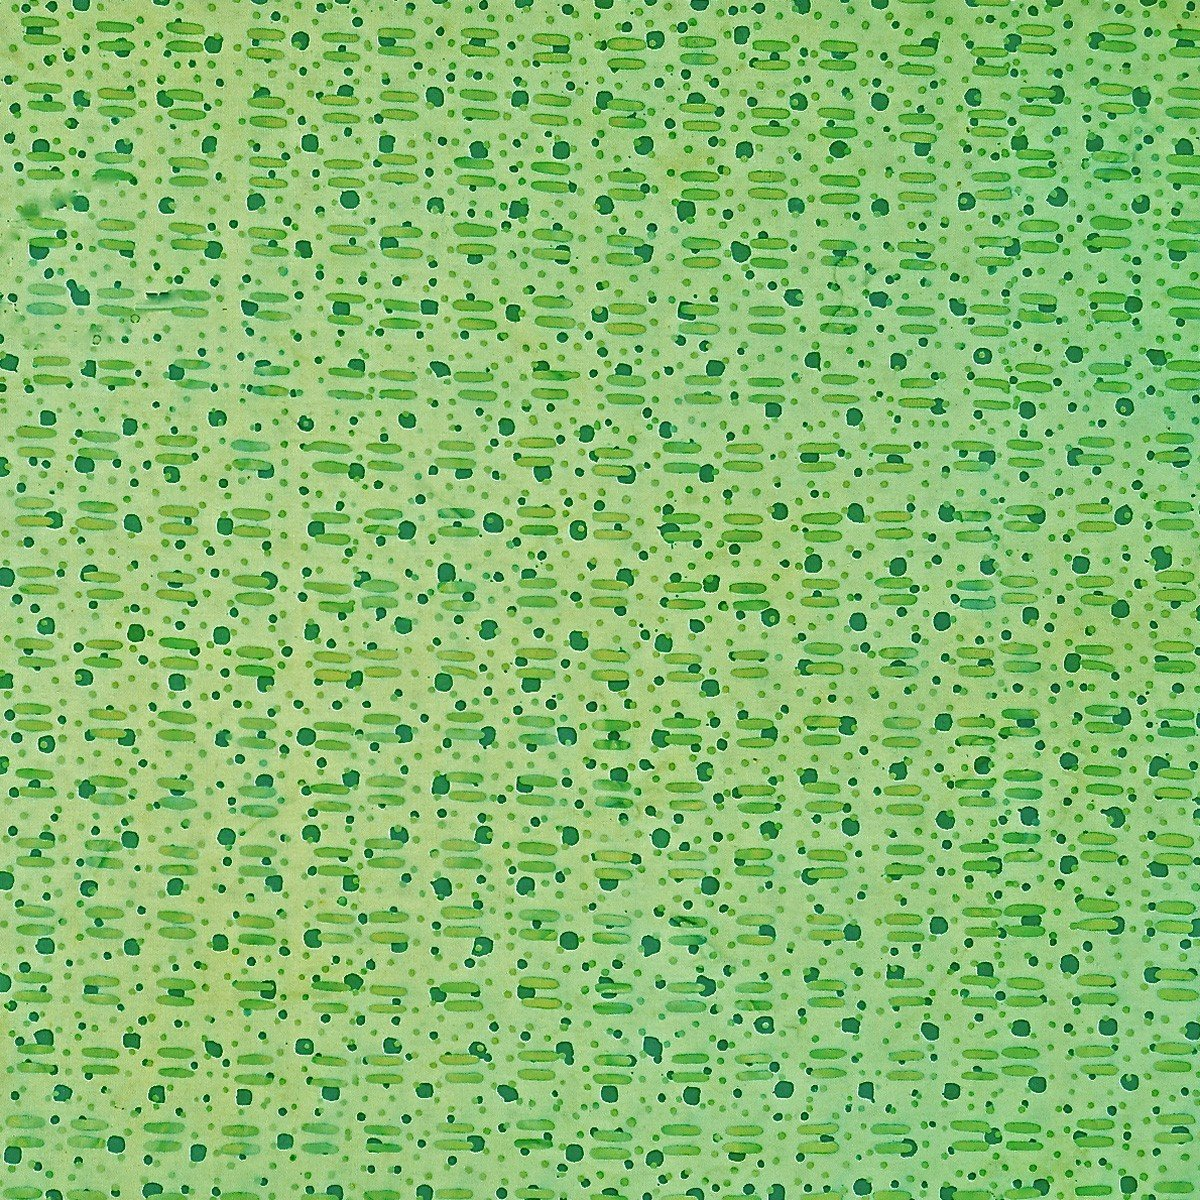 Batik by Mirah - Zen Garden - Maggie Green - green dots & dashes on green